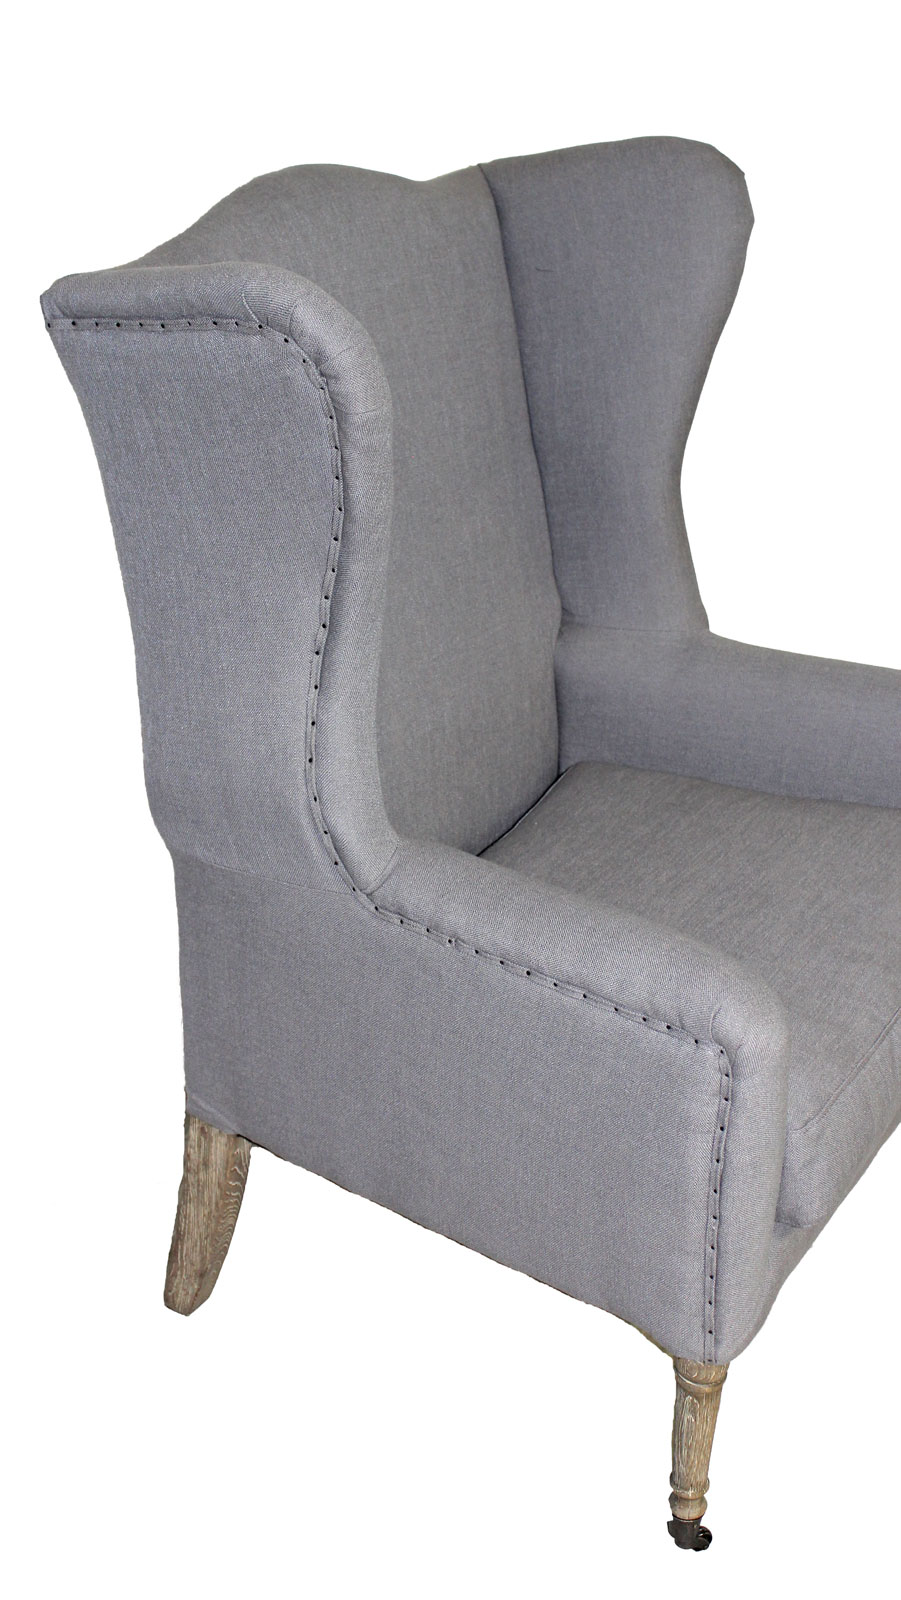 054-01-clayton-chair-side-view.jpg